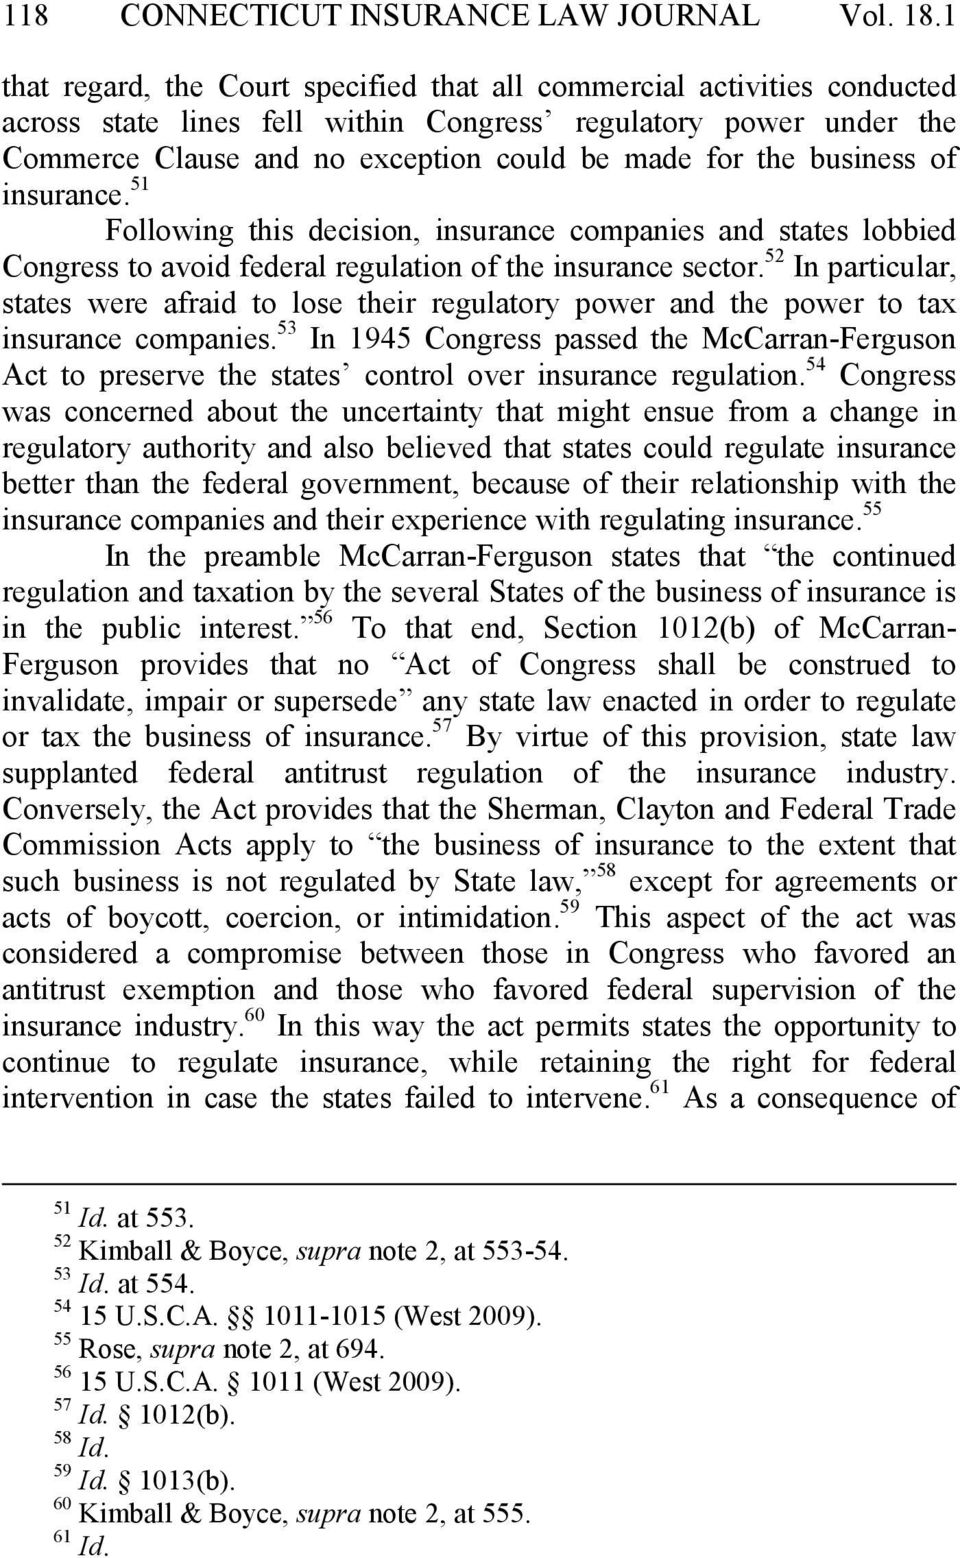 business of insurance. 51 Following this decision, insurance companies and states lobbied Congress to avoid federal regulation of the insurance sector.